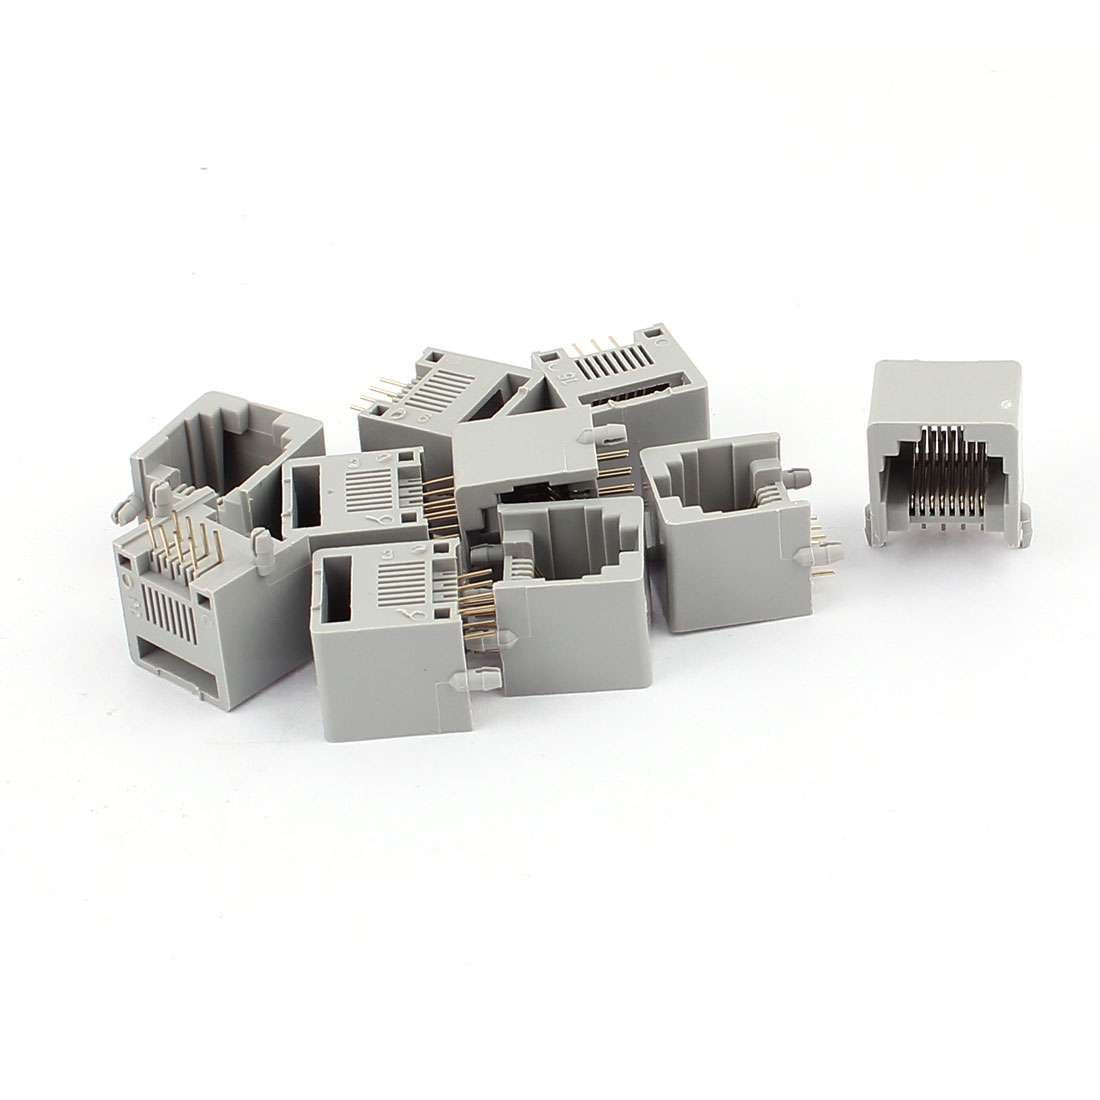 10pcs Gray Plastic RJ45 8P8C Modular PCB Mount Network Internet Jack LAN Connector